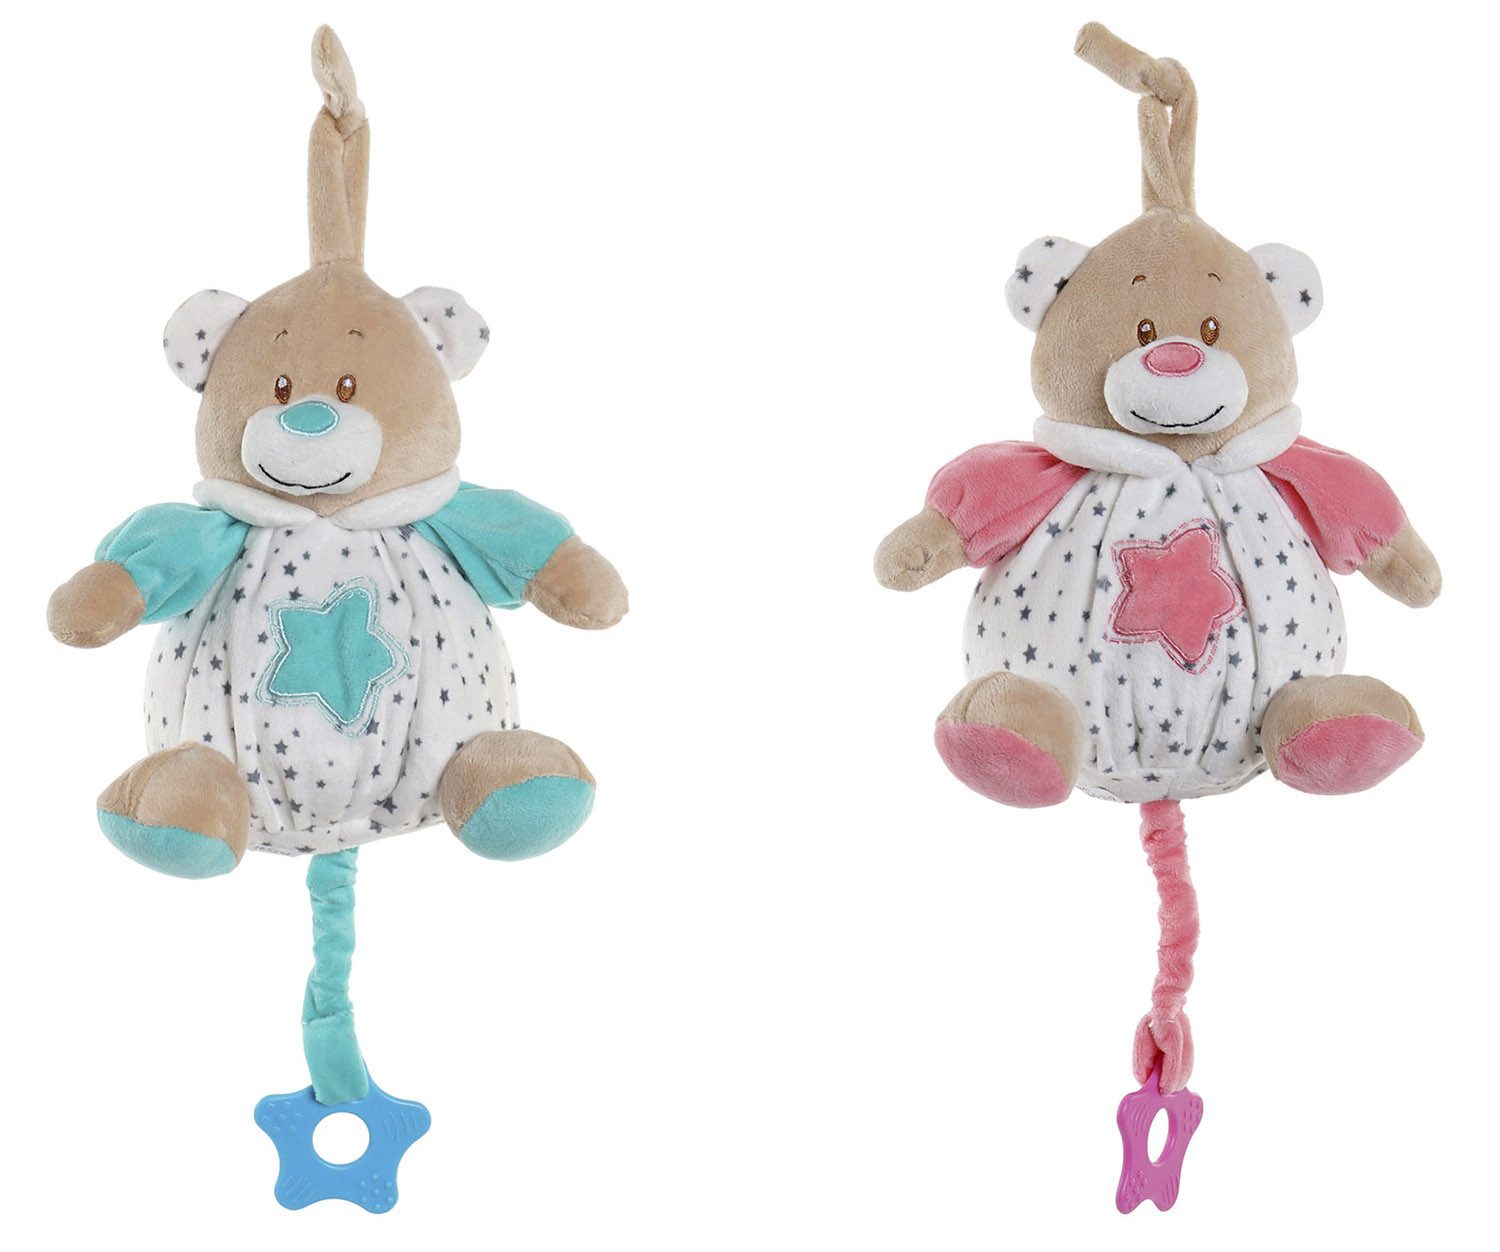 Teddy Bear Musical Baby, with hitch Star to be able to Hang it. Design of Animal, with Child style 16x16x17cm